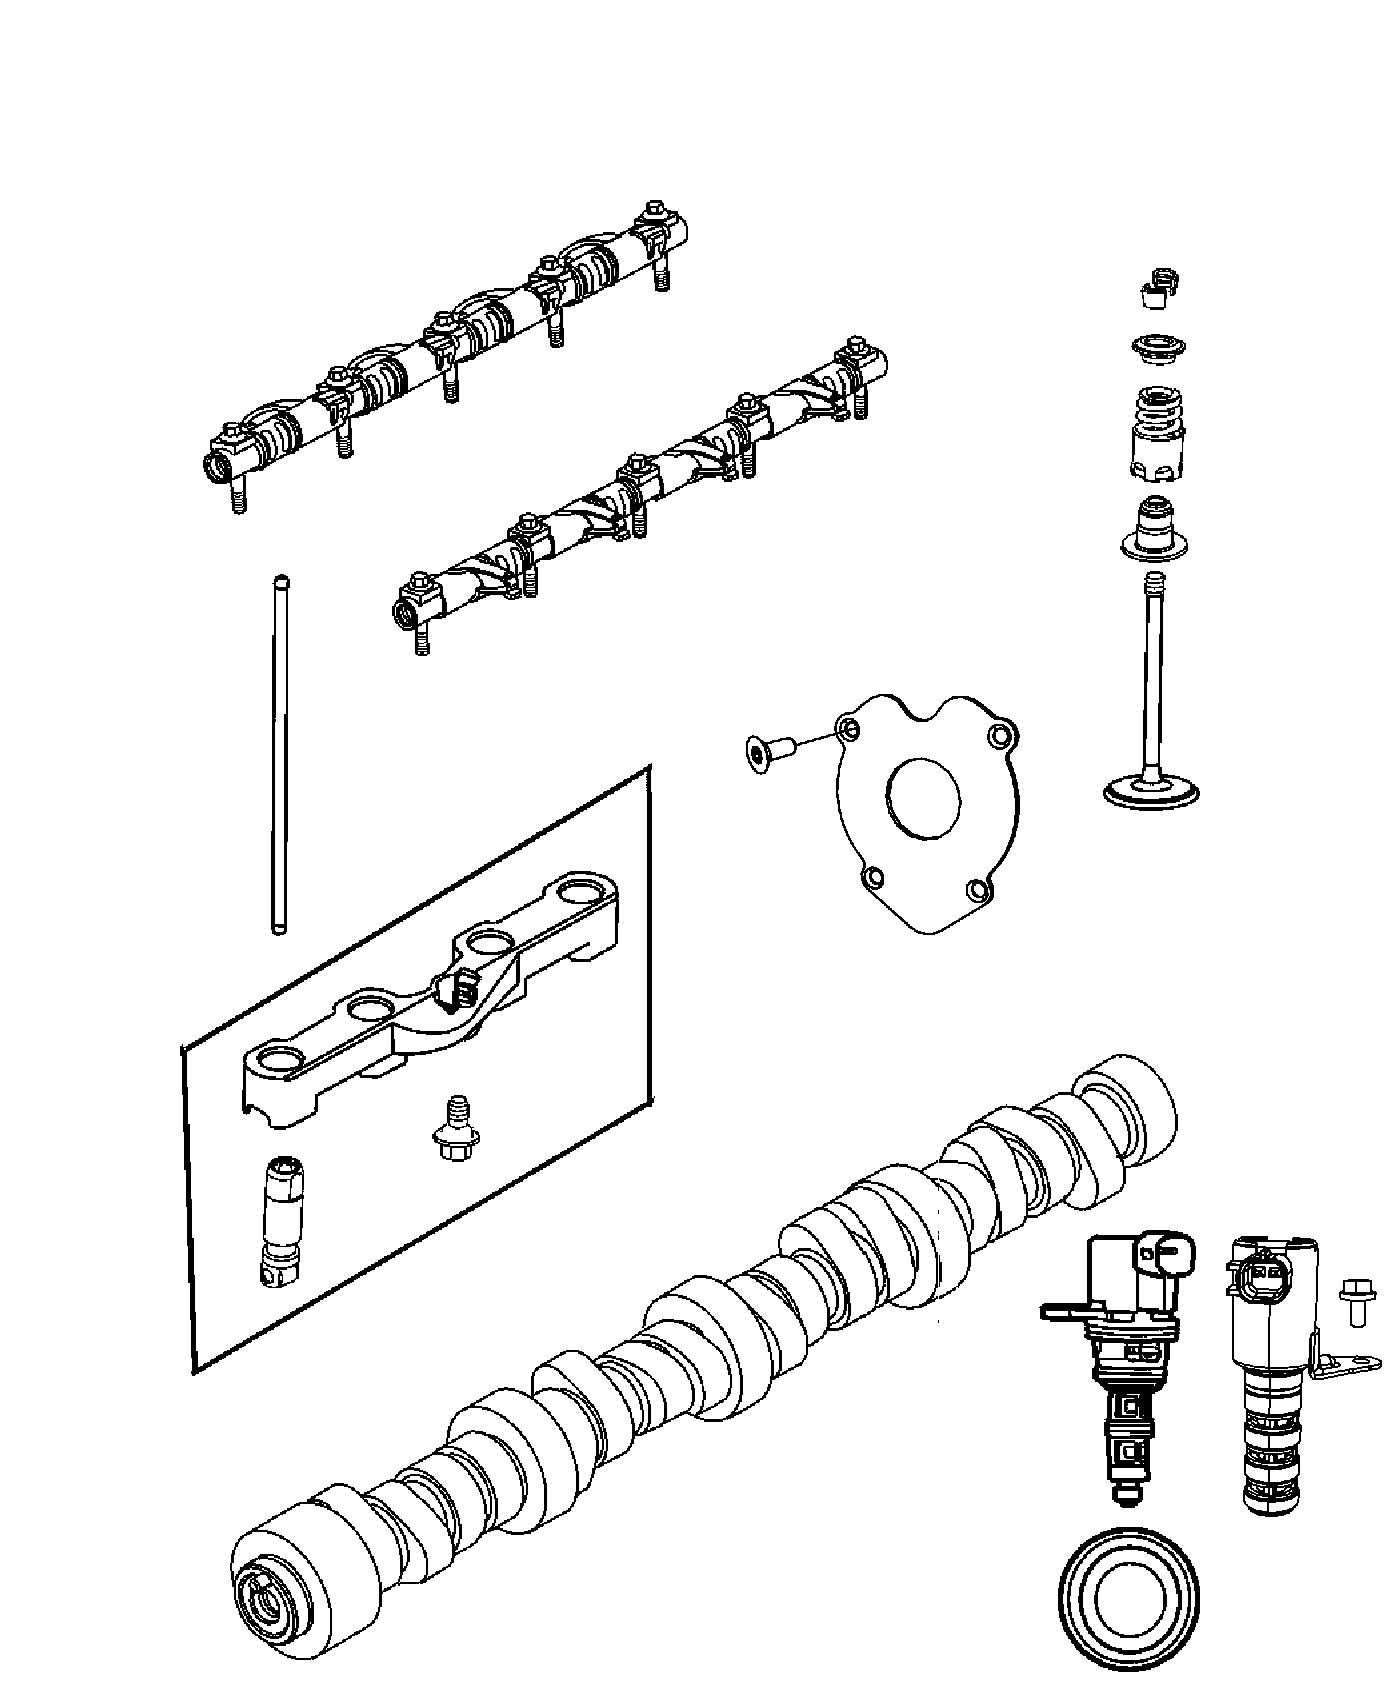 i2299008  L Hemi Engine Gasket Diagram on jeep grand cherokee, jeep cherokee, performance parts, engine pulley part number, engine pulley schematic, v8 horsepower, intake manifold upgrade,